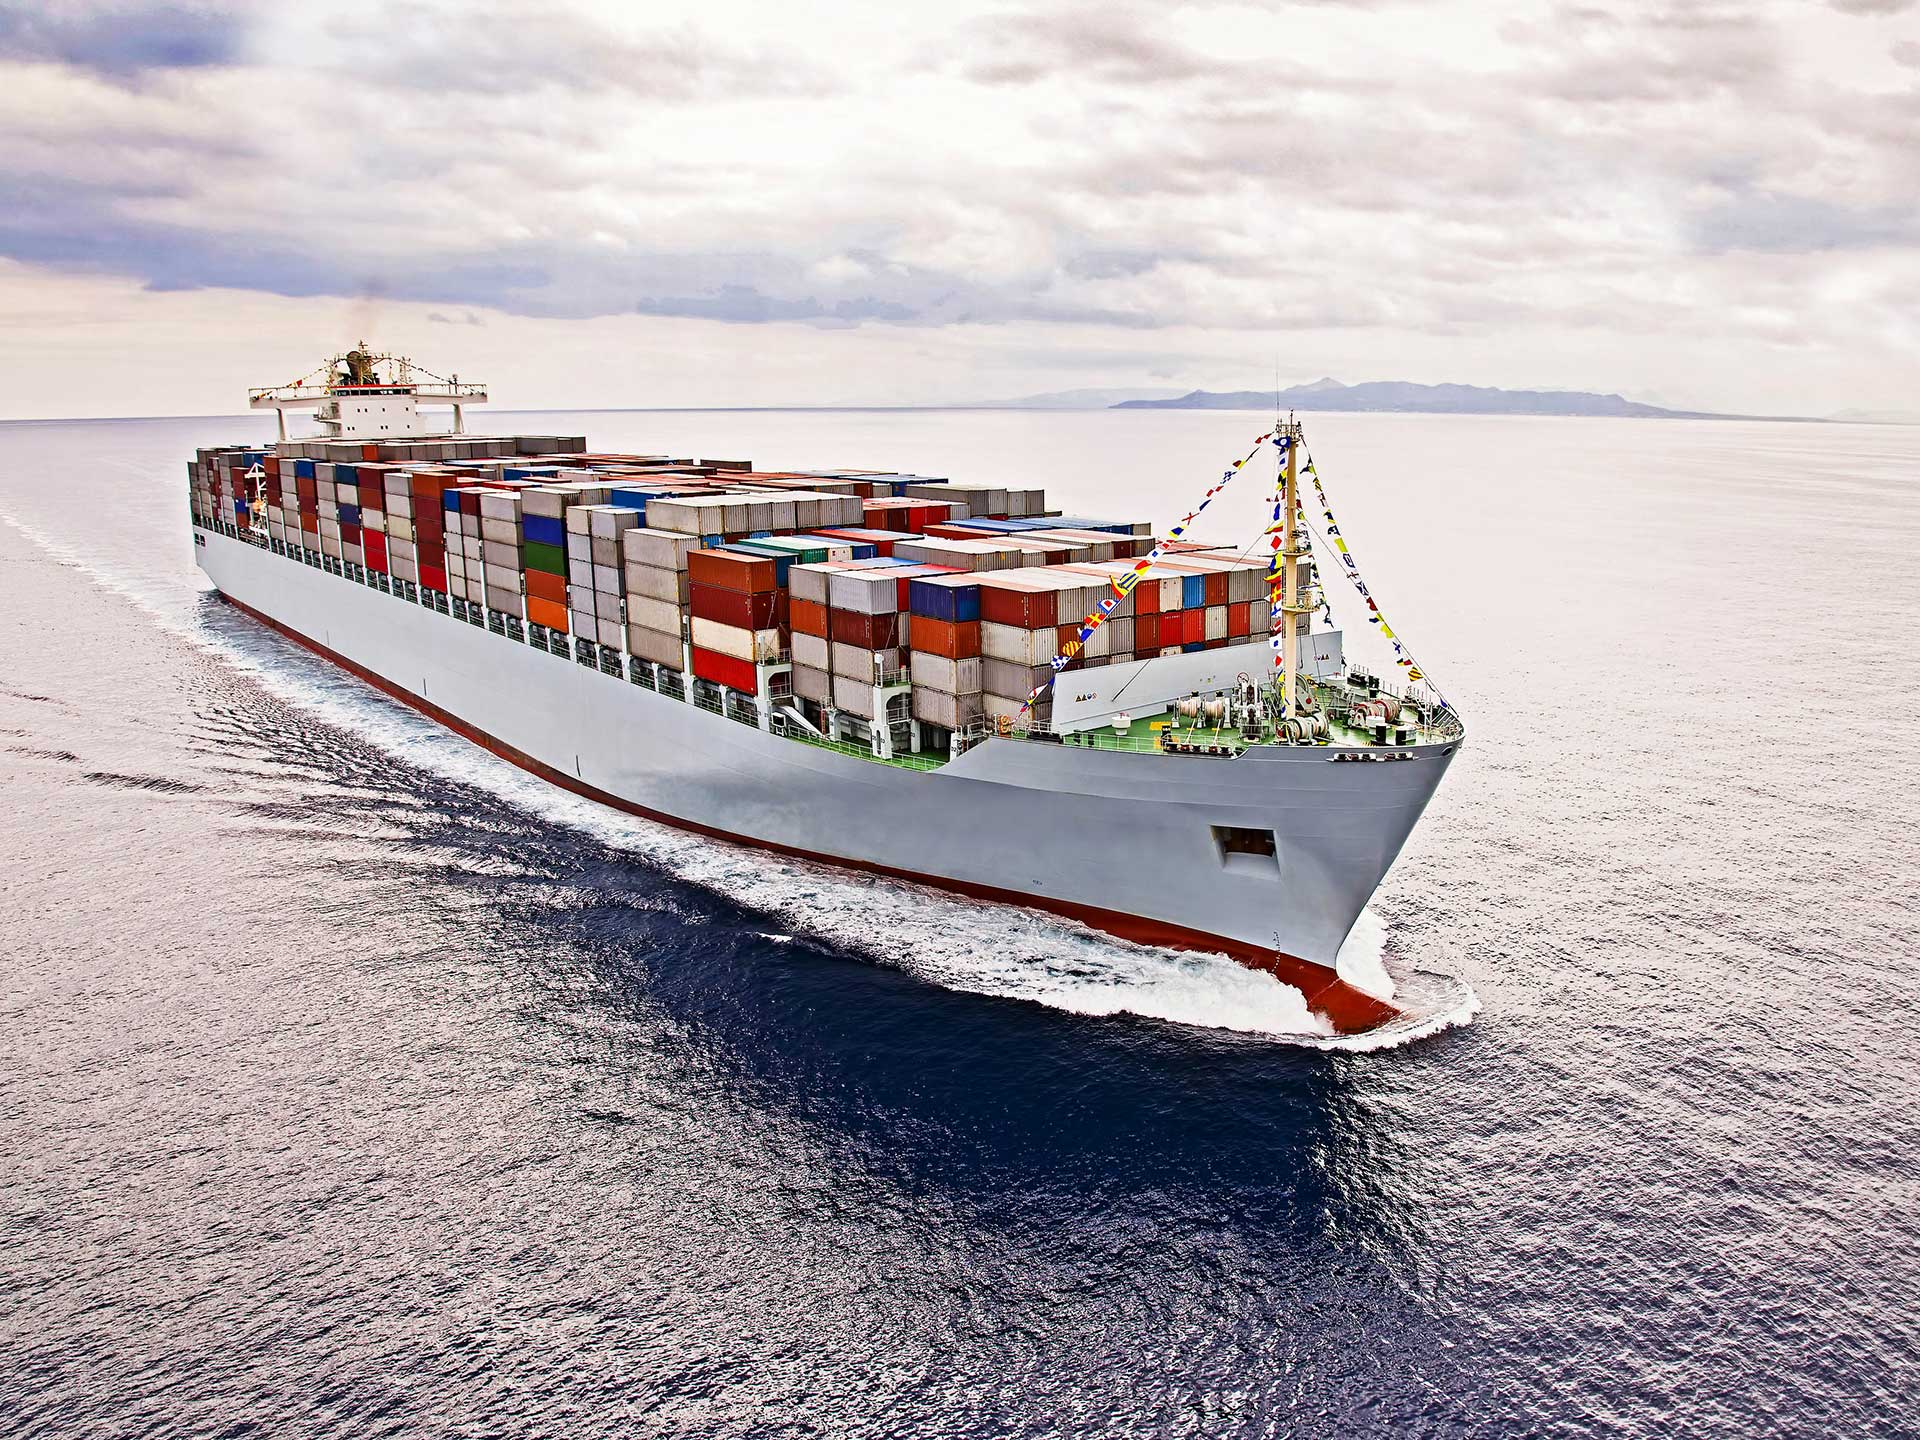 Maersk to launch a carbon neutral vessel by 2023, seven years ahead of schedule